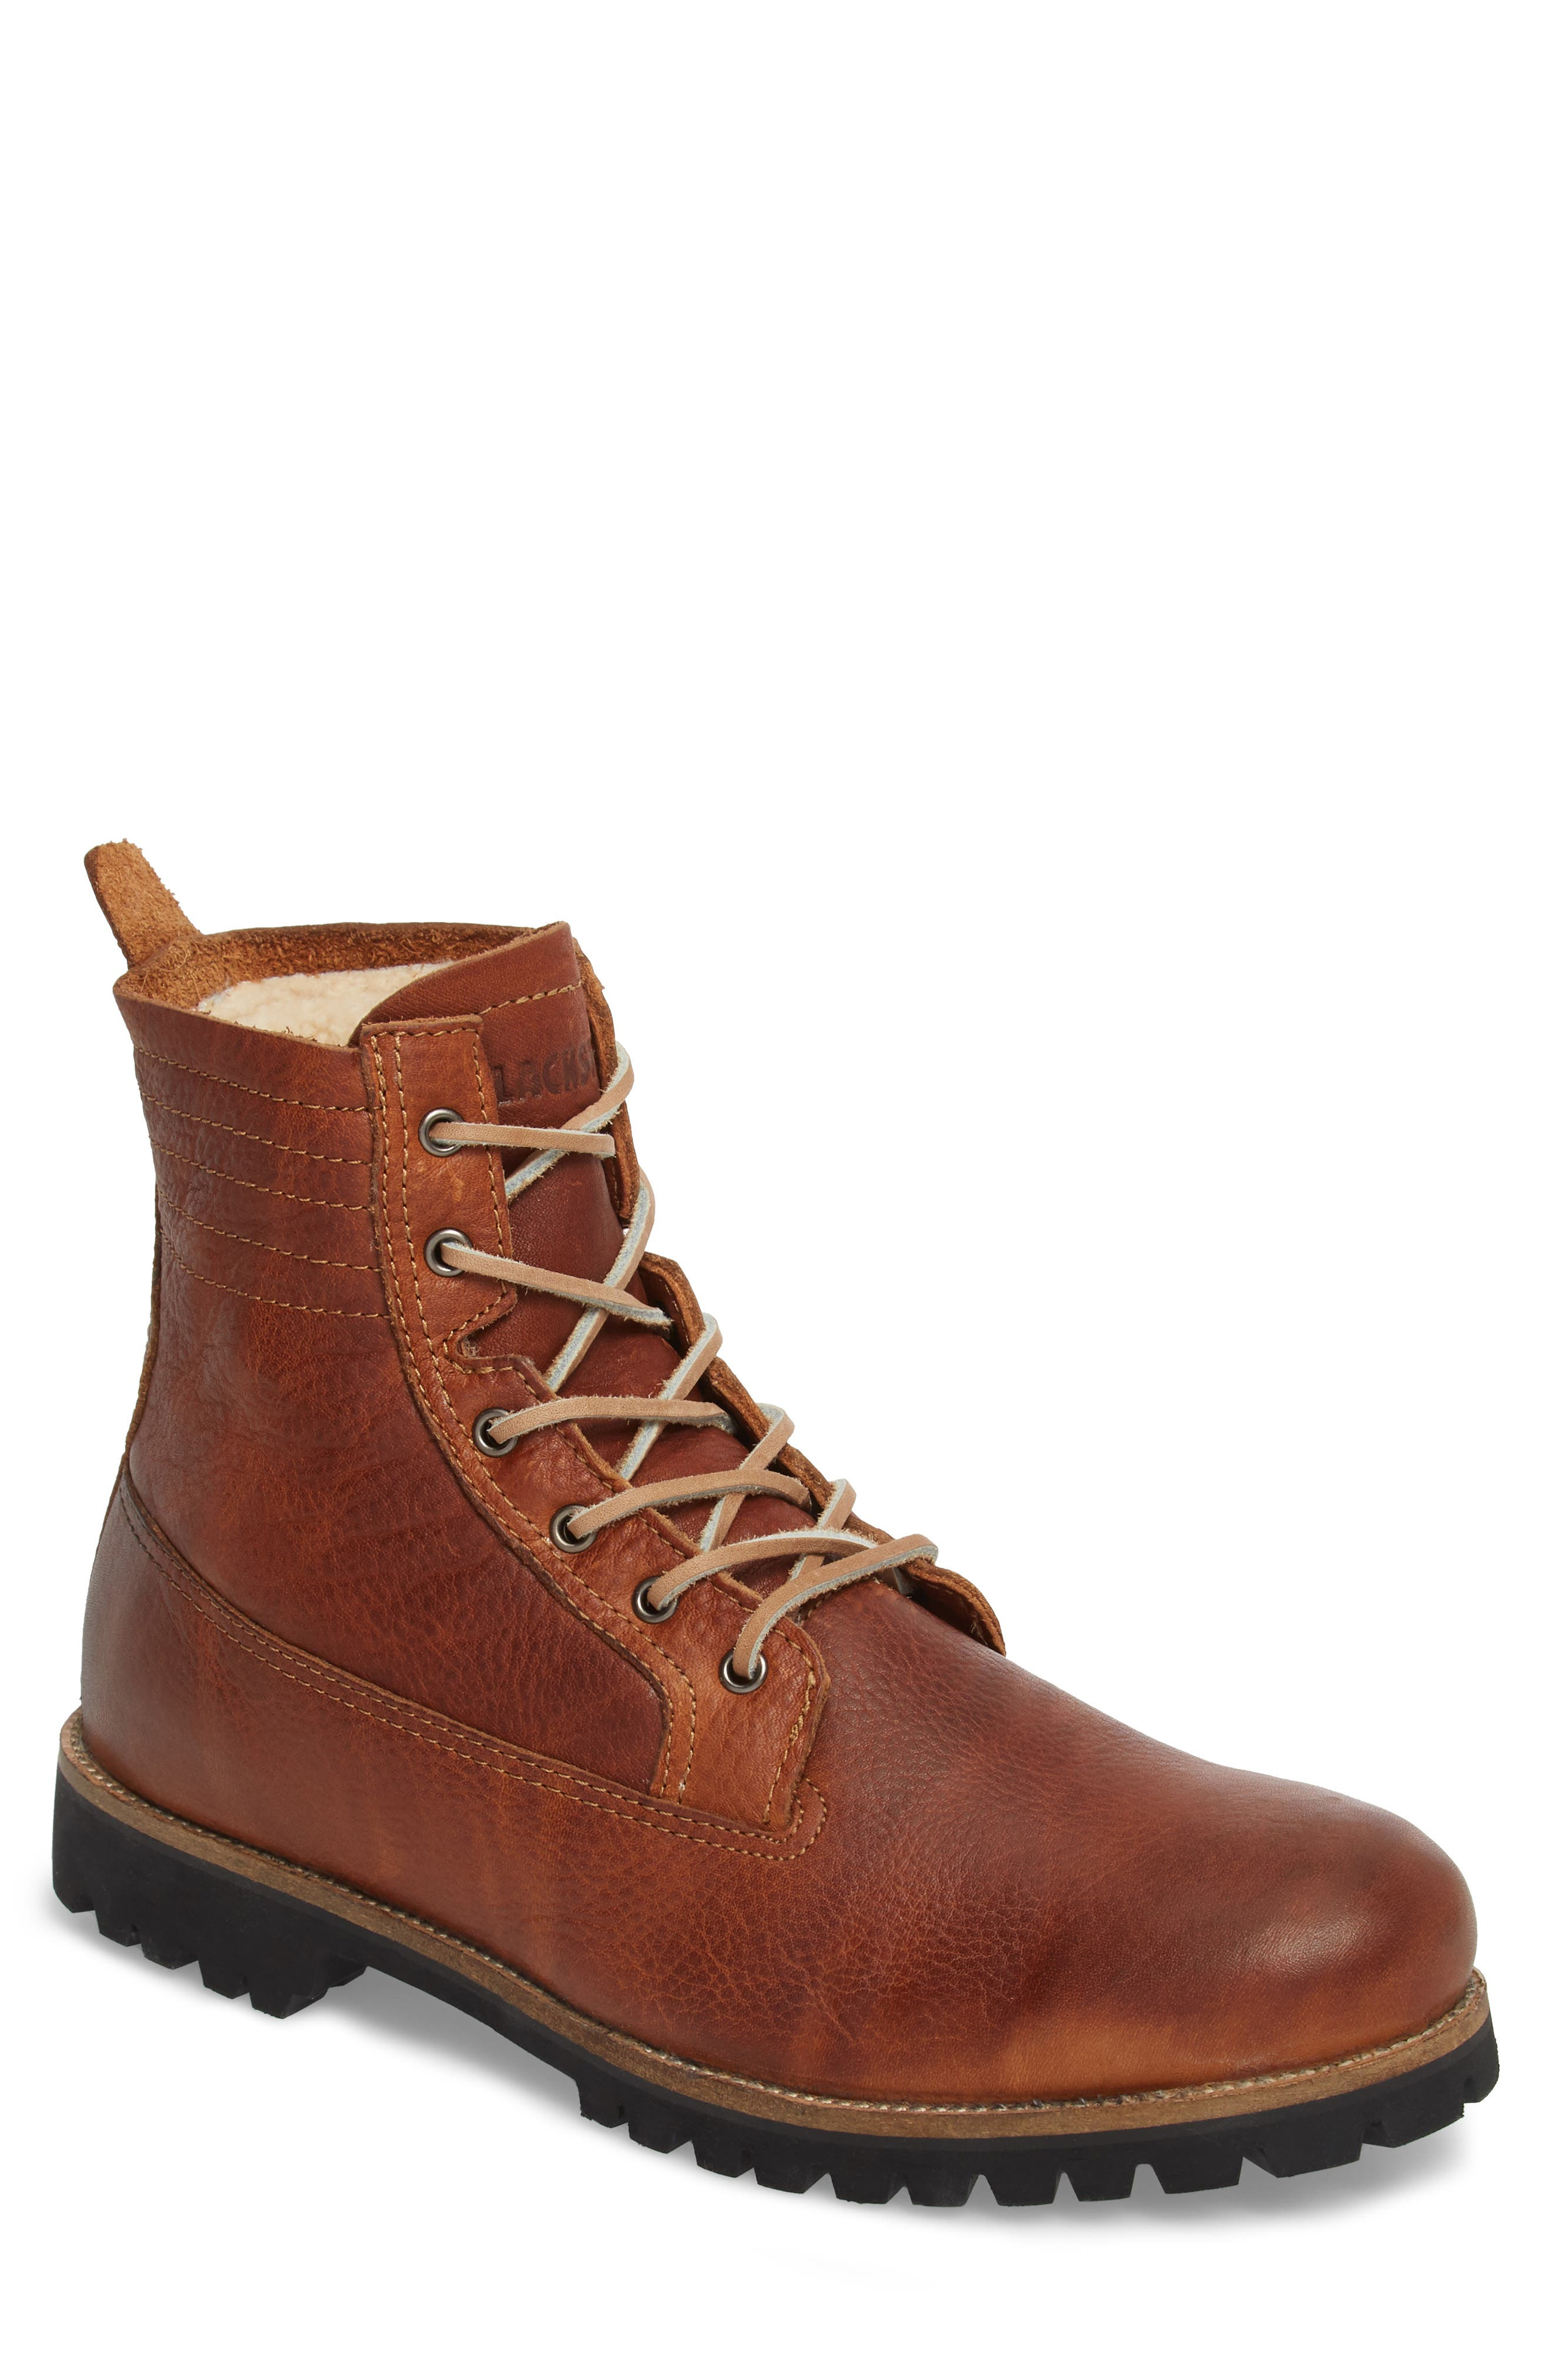 IM 12 Plain Toe Boot with Genuine Shearling,                         Main,                         color, Cuoio Leather